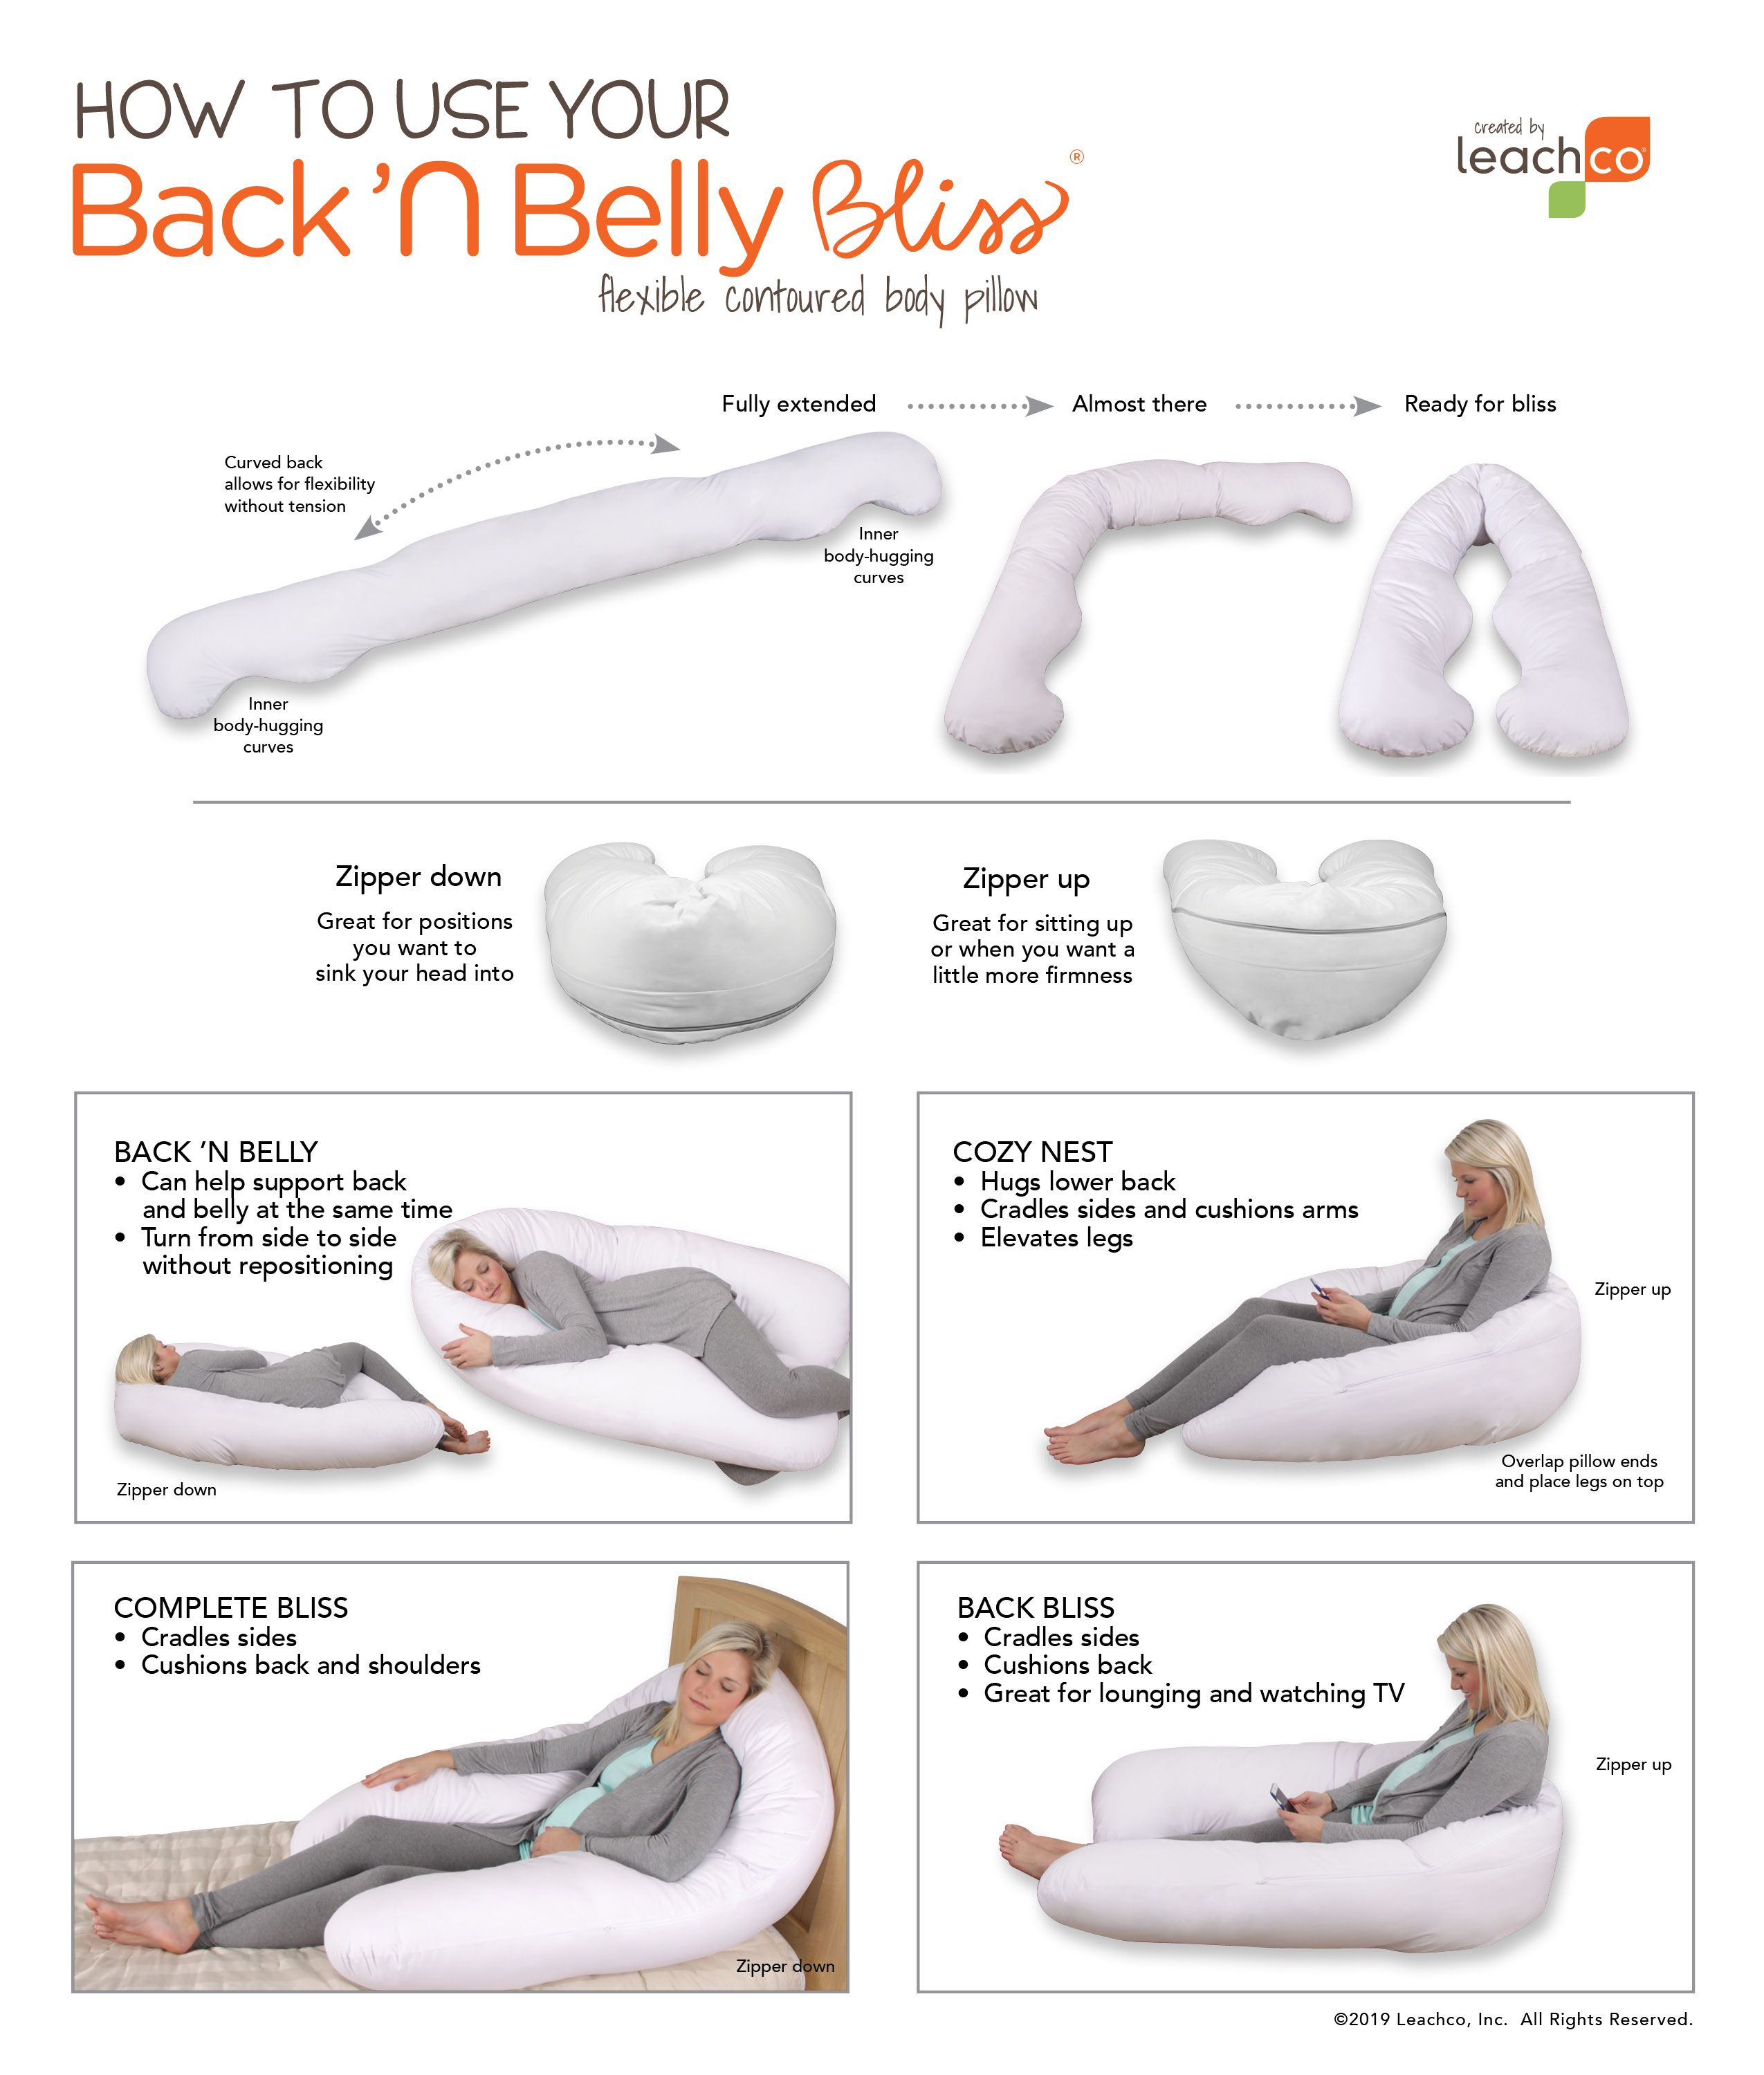 Back N Belly Bliss In 2020 Body Pillow Machine Wash Pillows Body